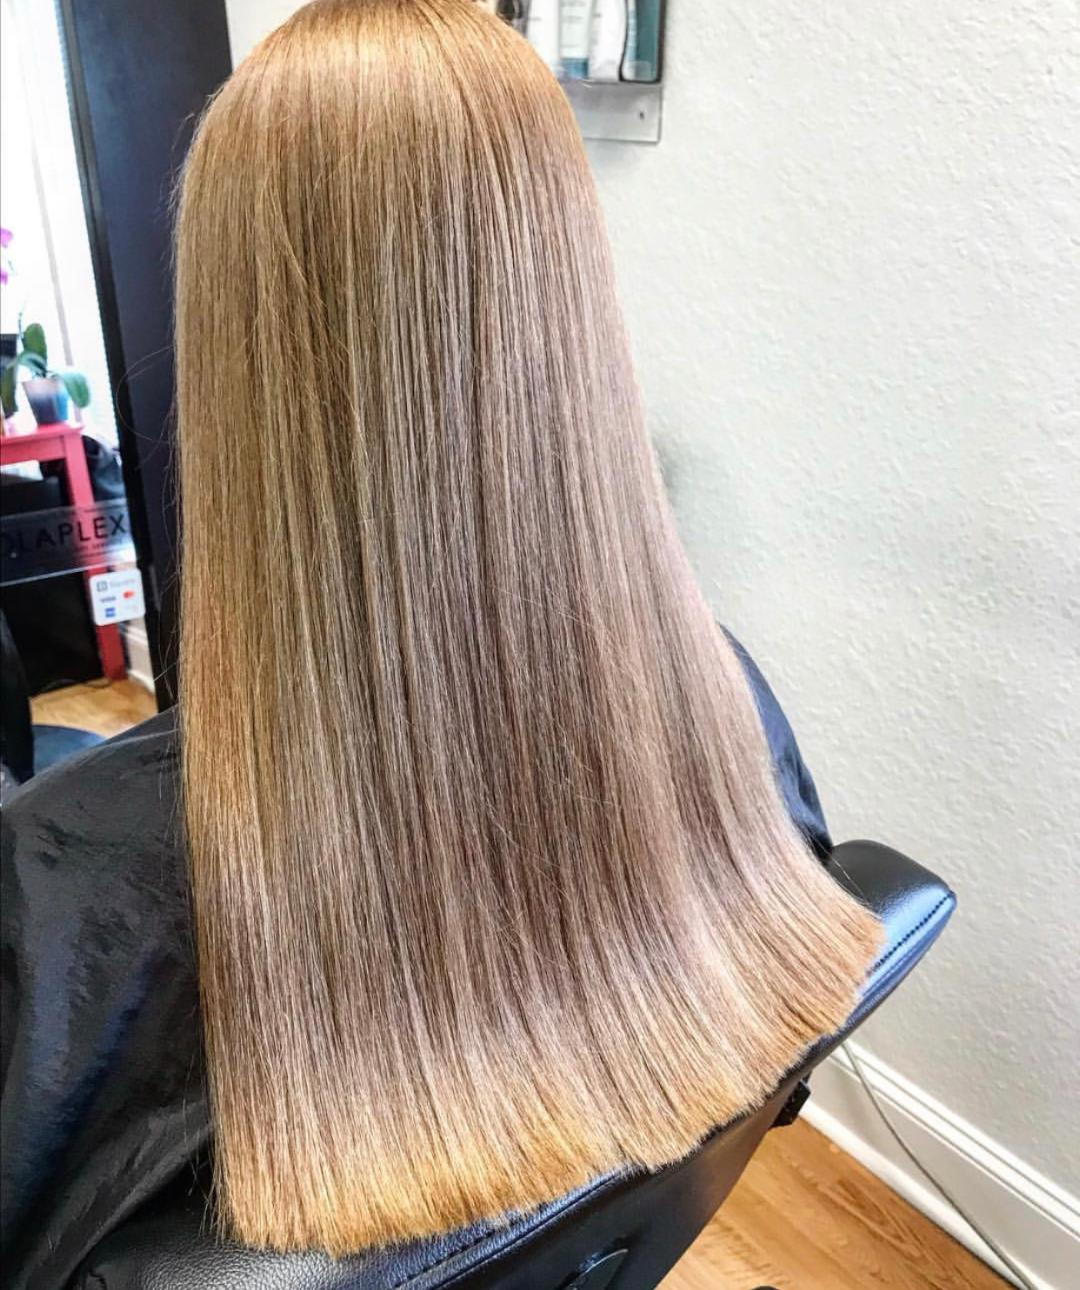 We are always willing to help our clients achieve their hair goals but the number one goal should always be healthy hair . -